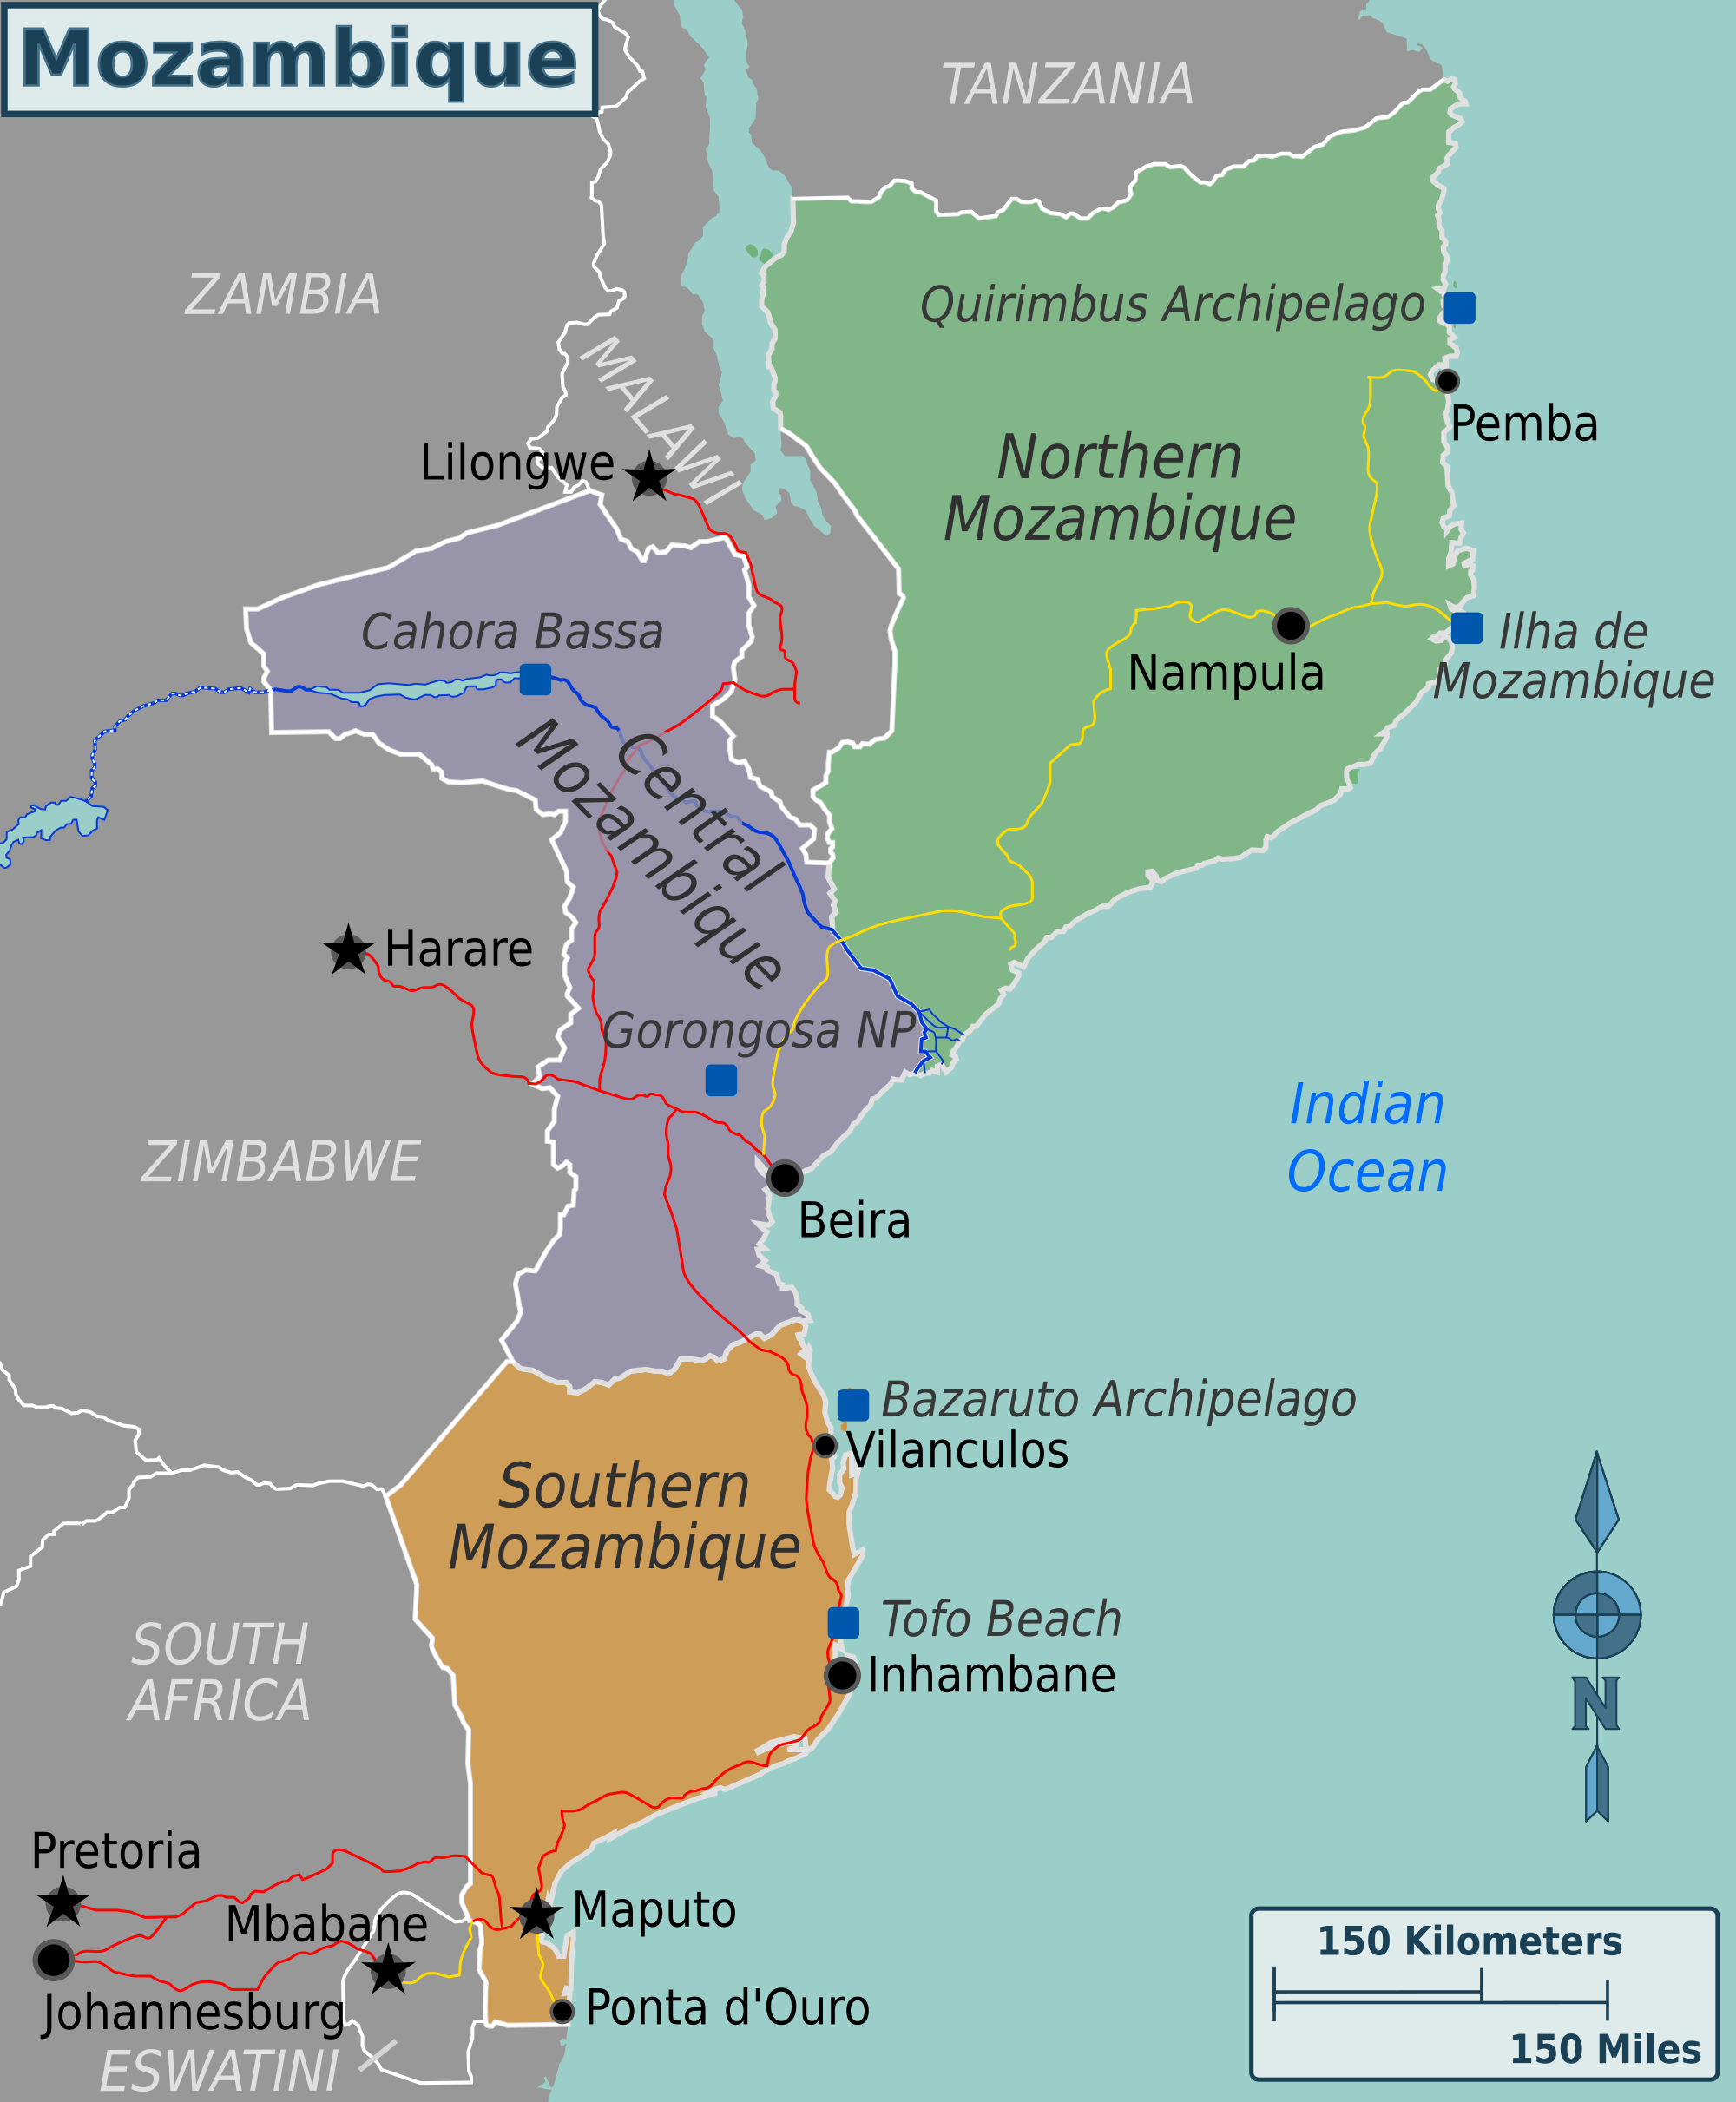 Mozambique – Travel guide at Wikivoyage